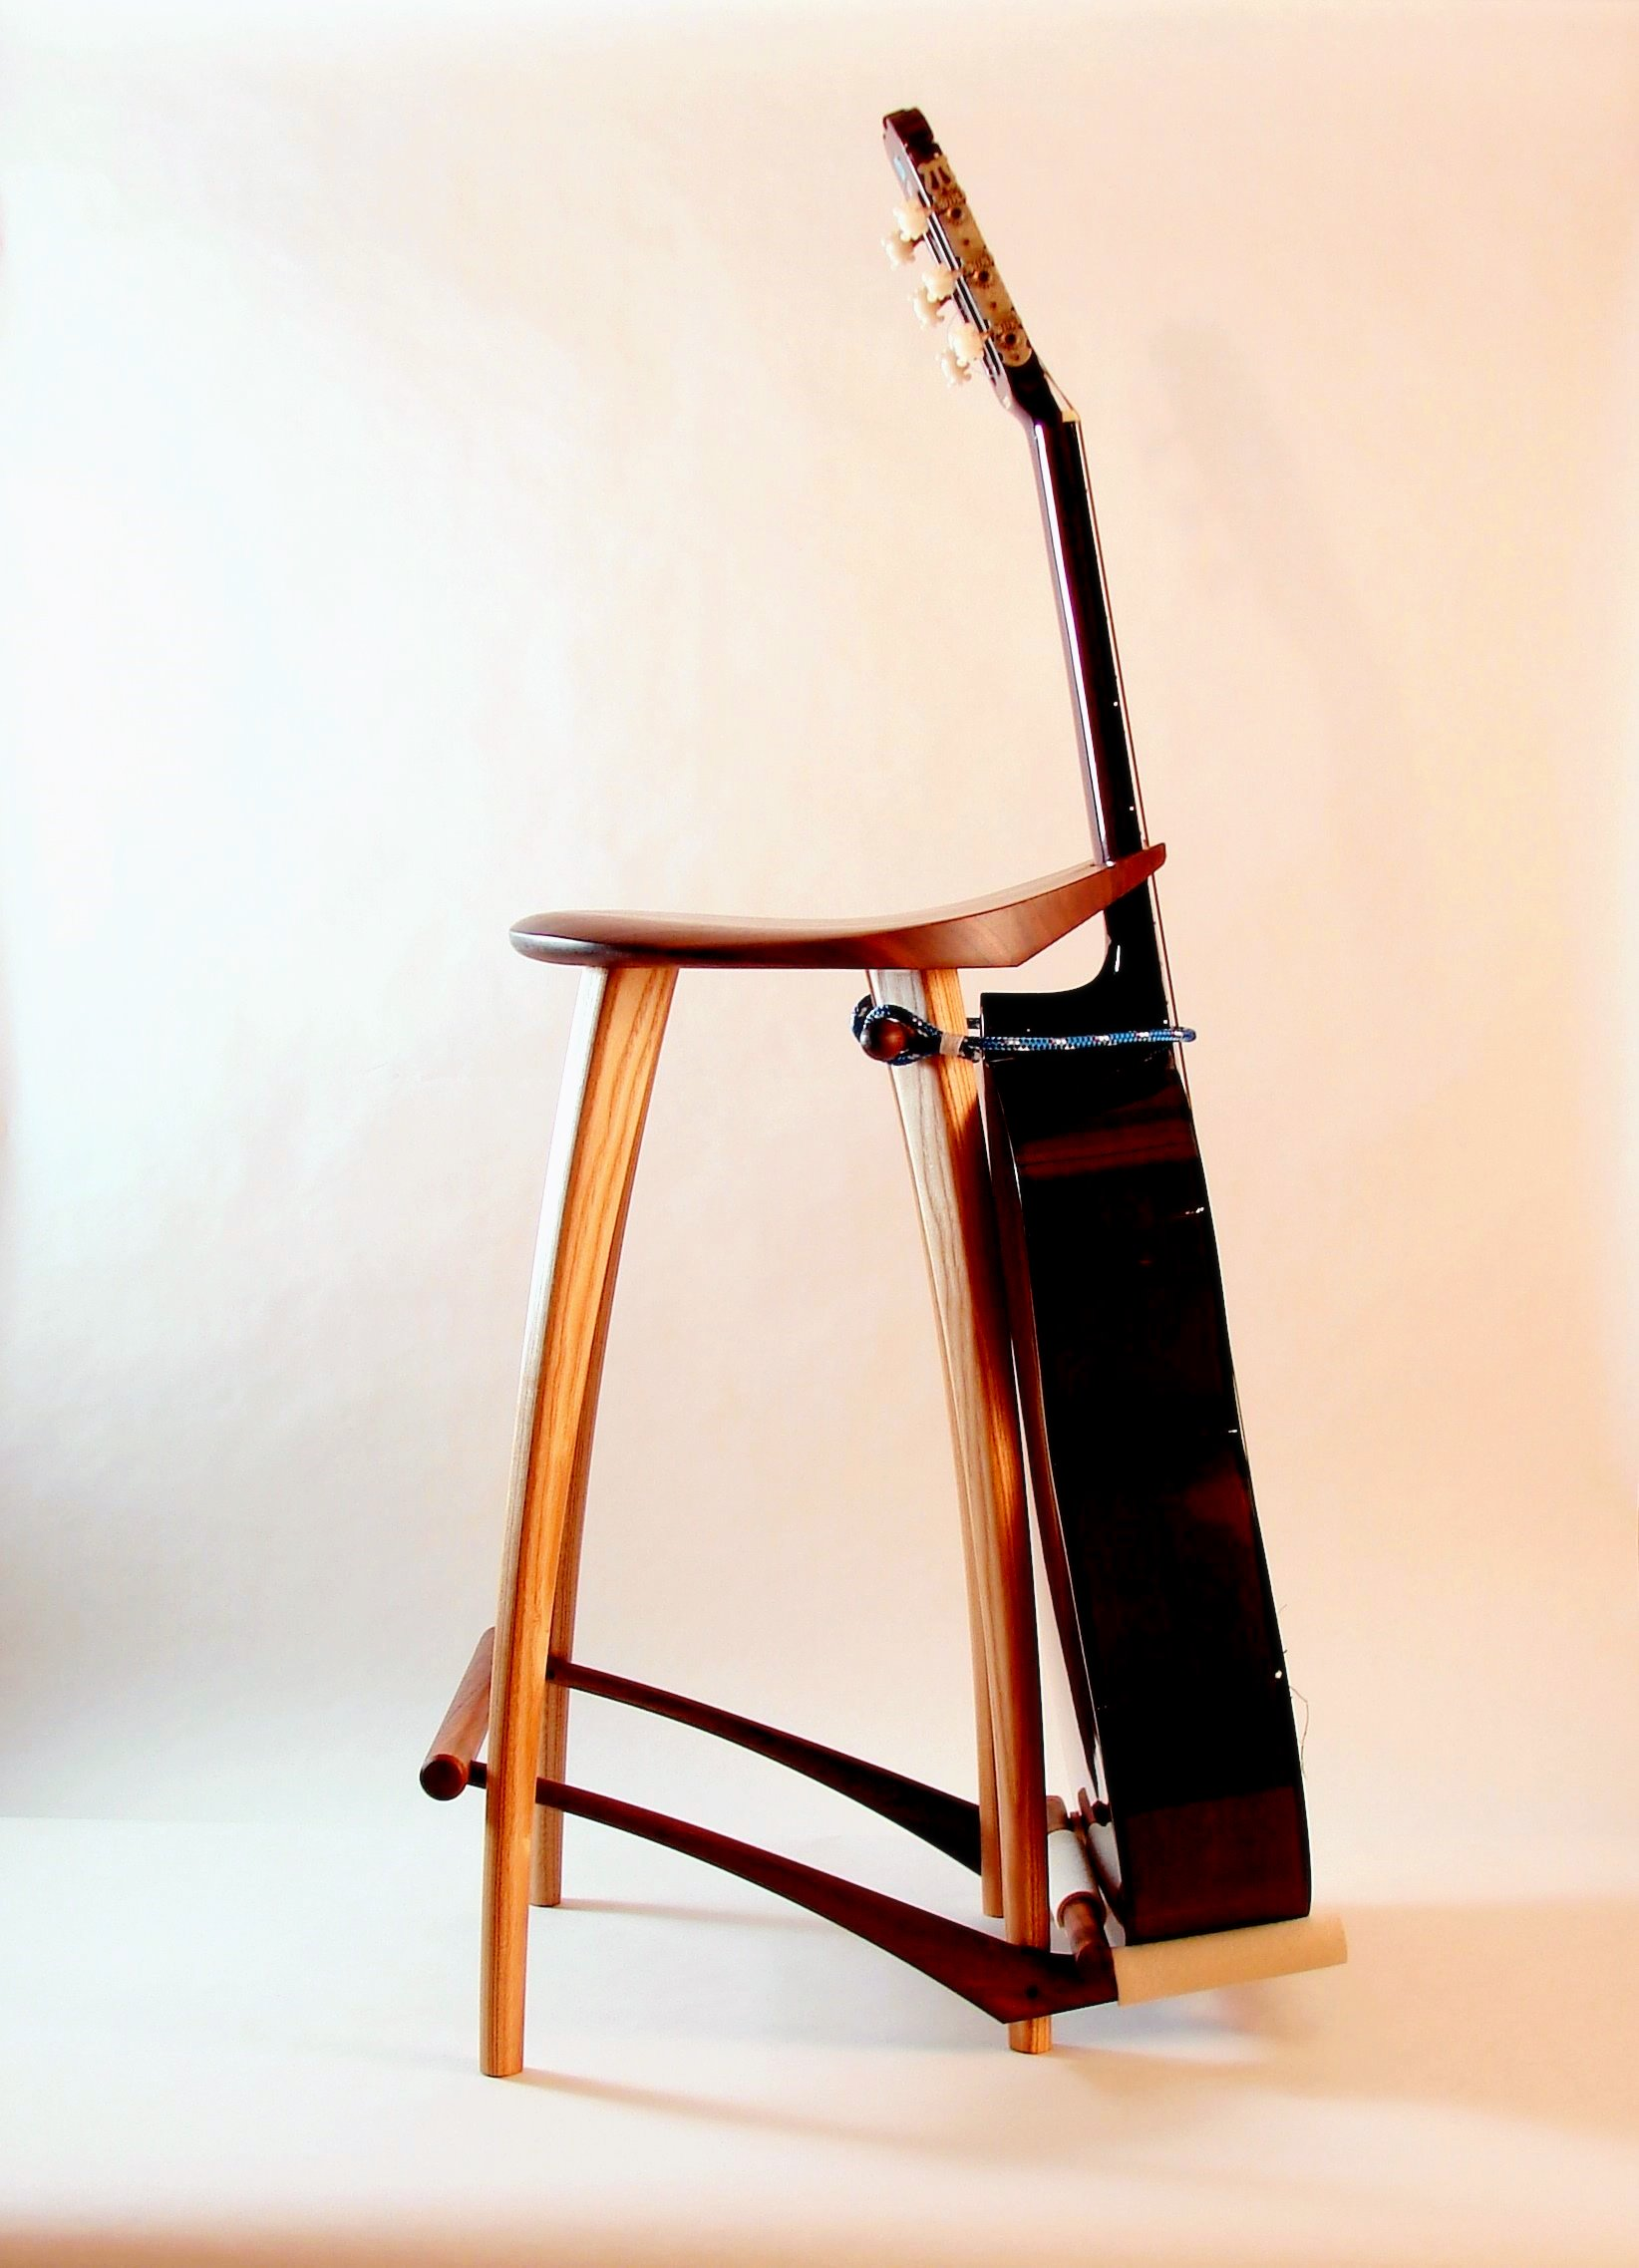 Guitar Stand Designs : Guitar stool stand fillingham art furniture design